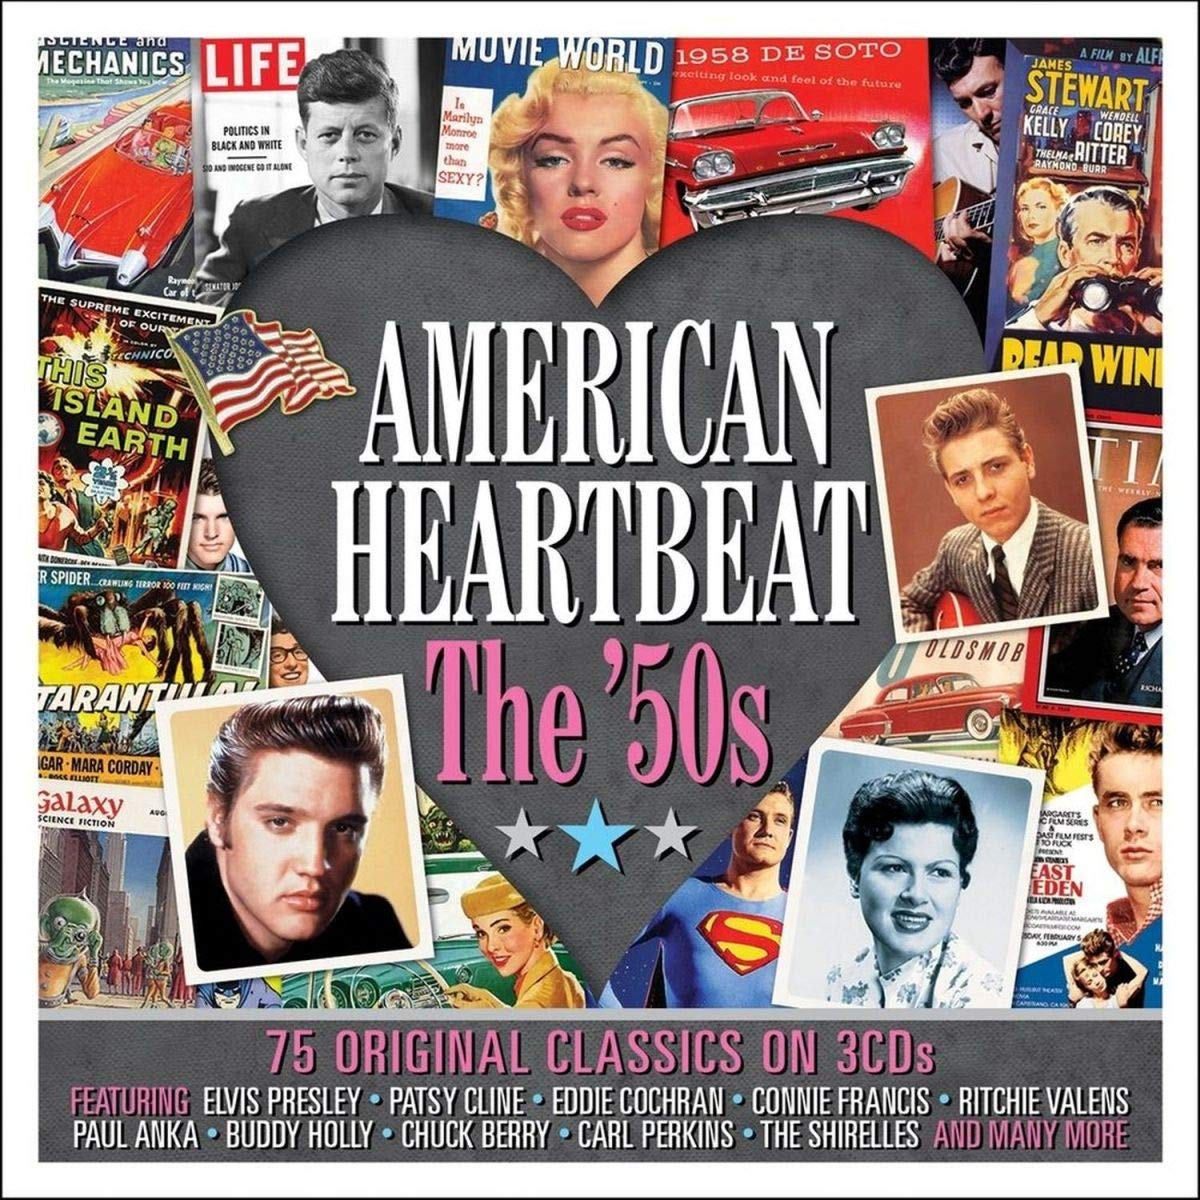 AMERICAN HEARTBEAT-THE 50'S : Patsy Cline,Connie Francis,Ritchie Valens,Paul Anka,Chuck Berry...